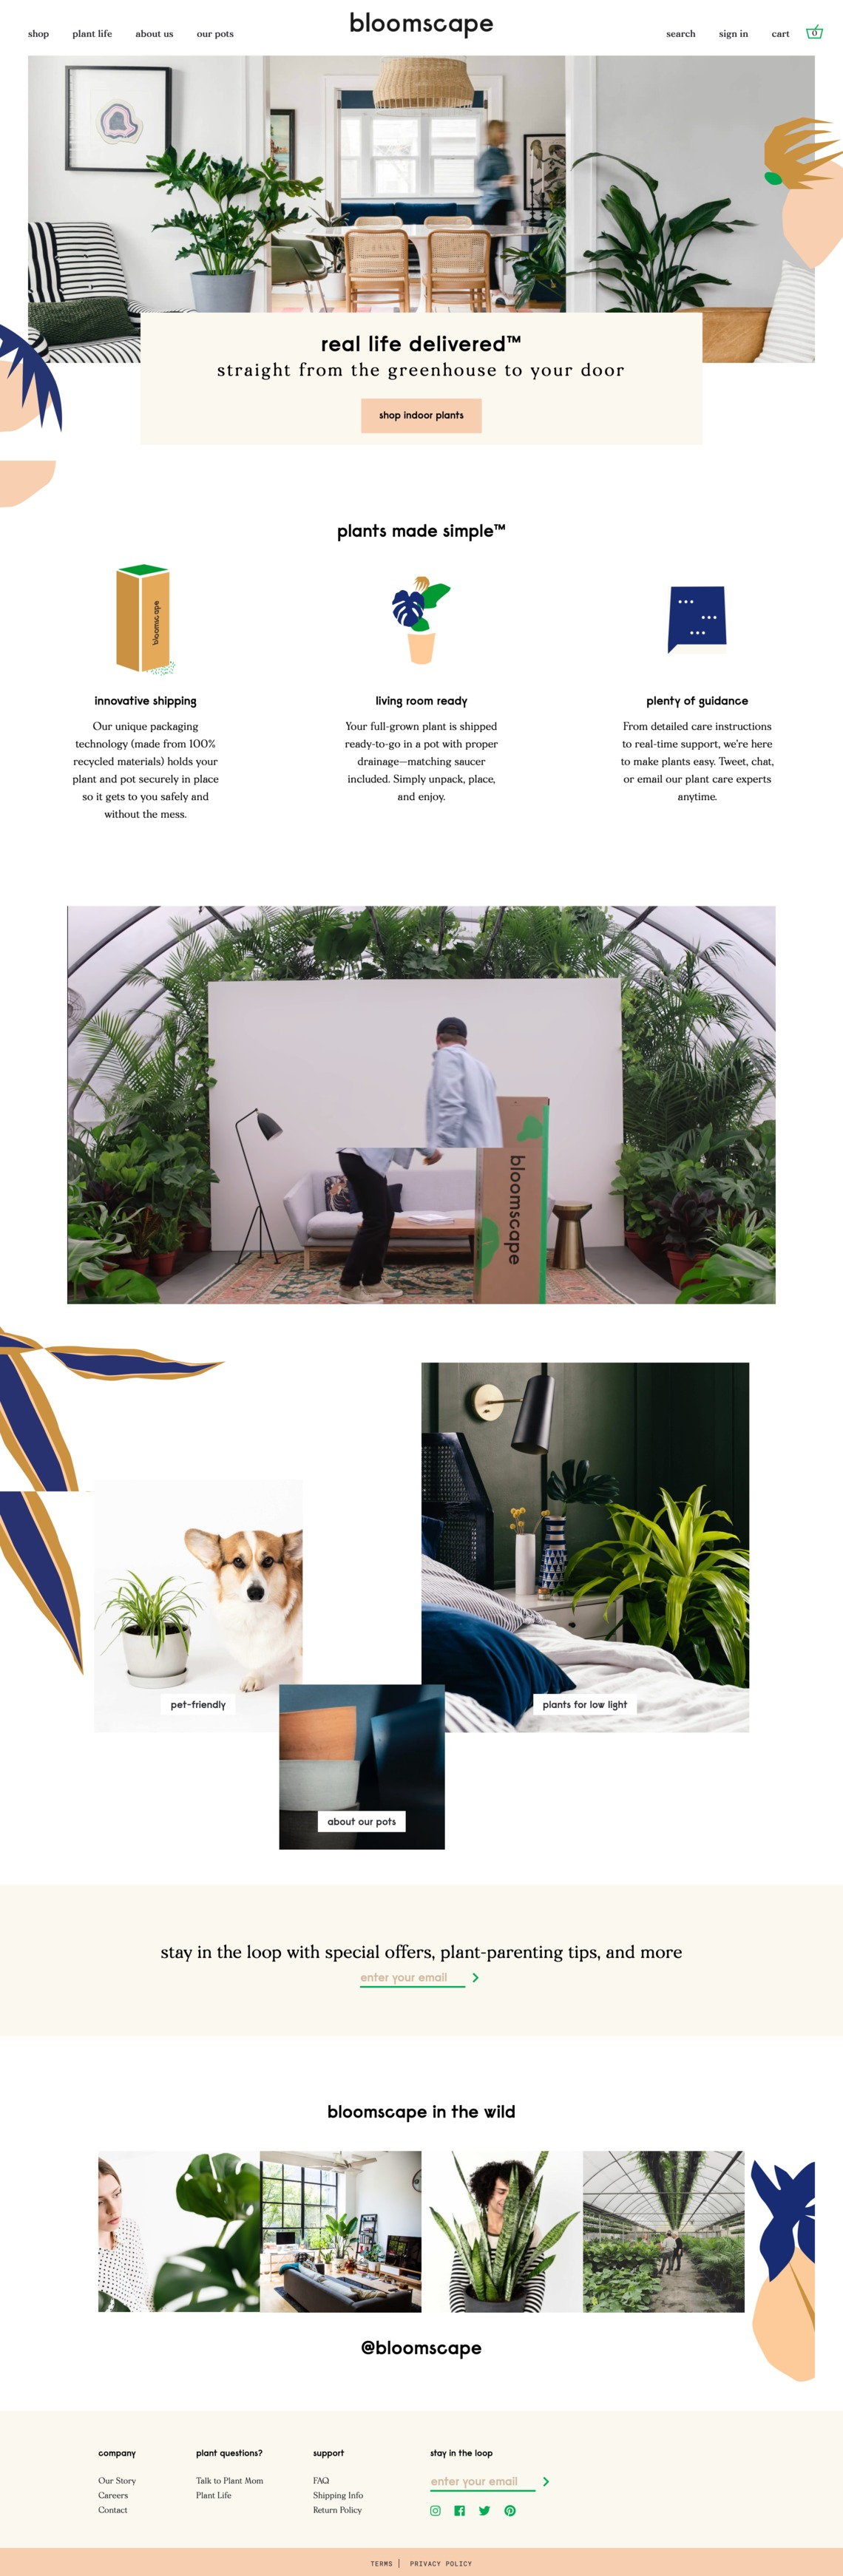 Bloomscape | Living room ready plants delivered to your door